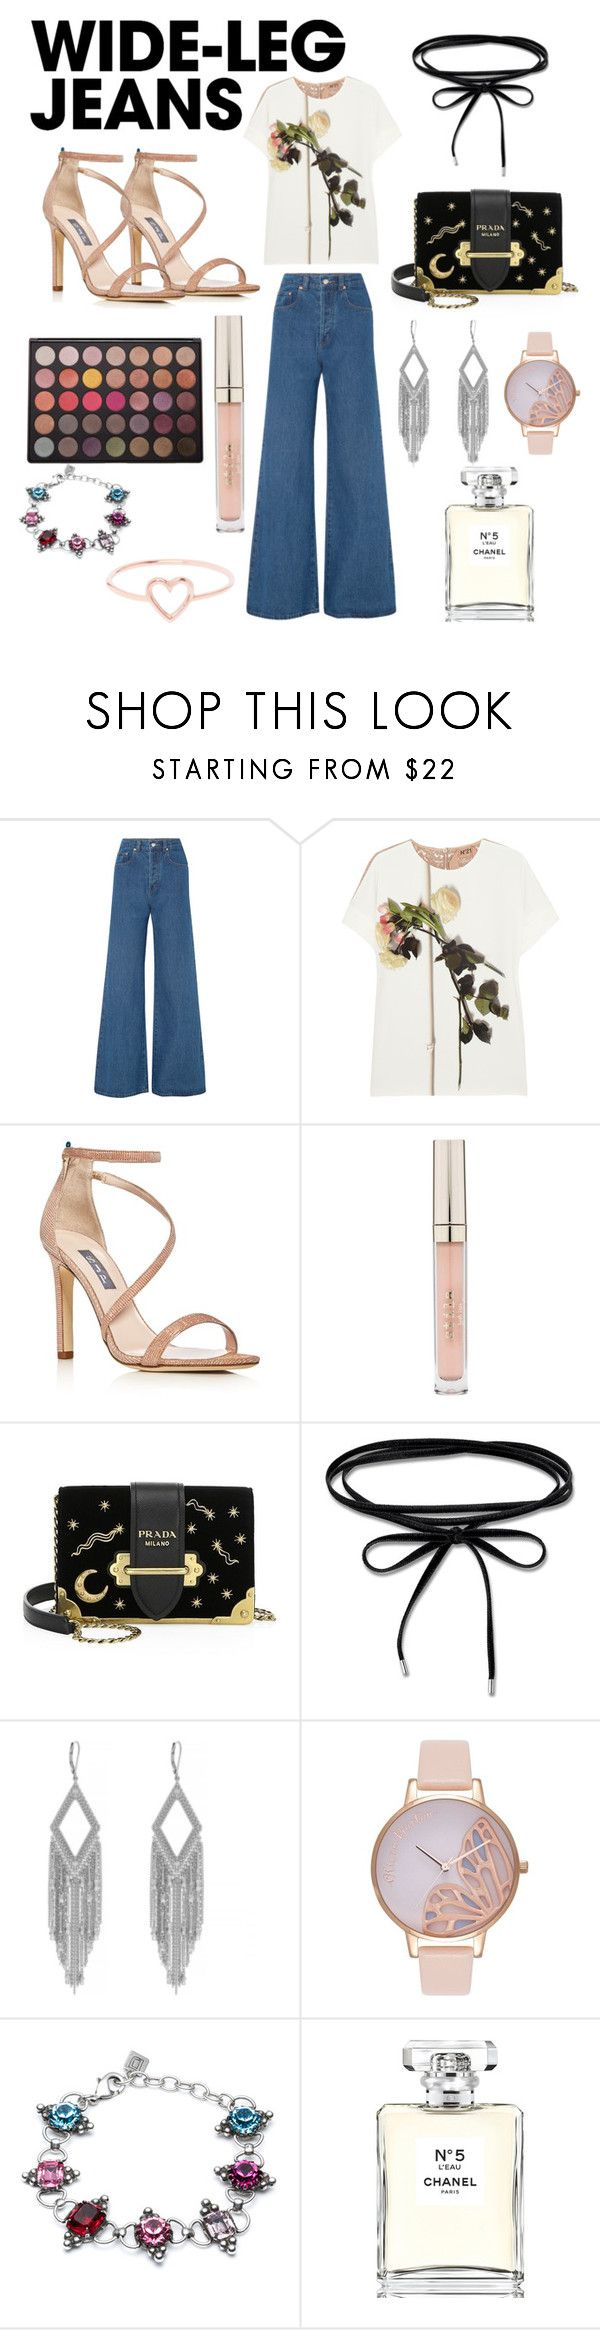 """""""Jeans for life"""" by avrilrotelas ❤ liked on Polyvore featuring Solace, N°21, SJP, Stila, Morphe, Prada, Thomas Sabo, Jessica Simpson, Olivia Burton and DANNIJO"""